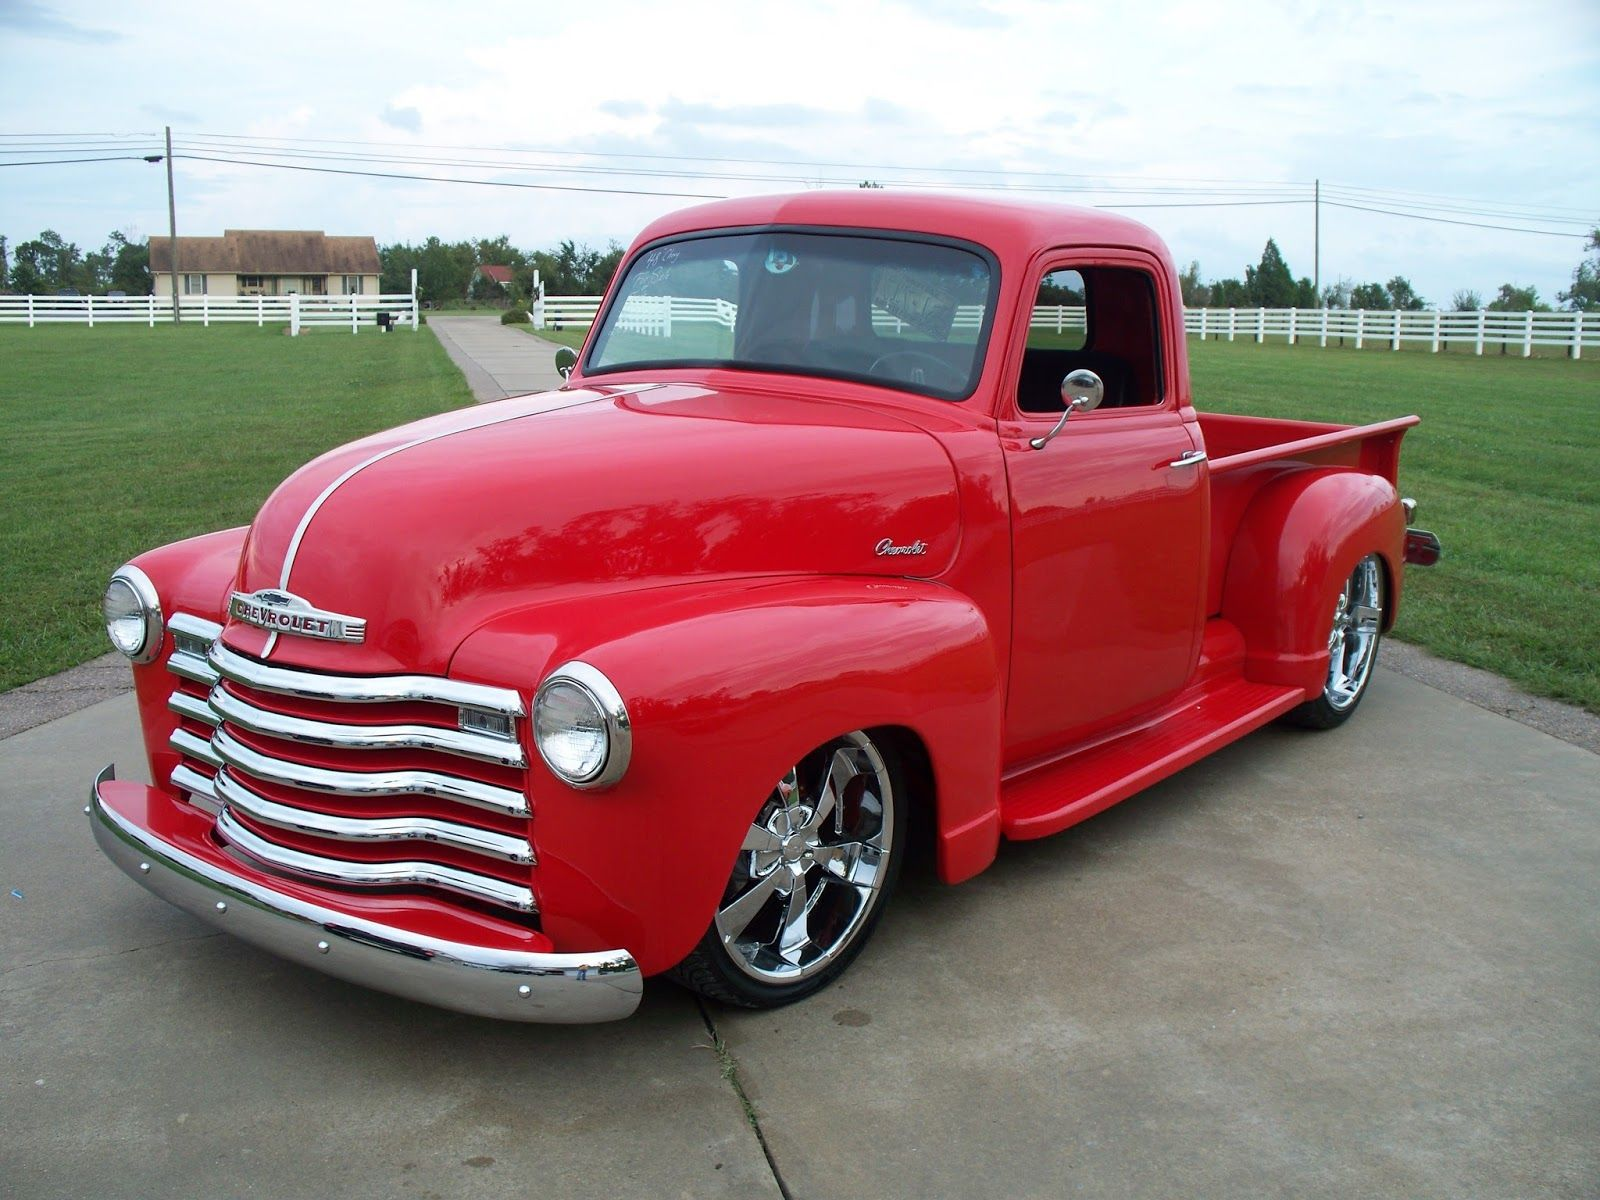 Pin by Hollywood on 1948 - 1953 Chevy Pickup | Pinterest | Chevy ...